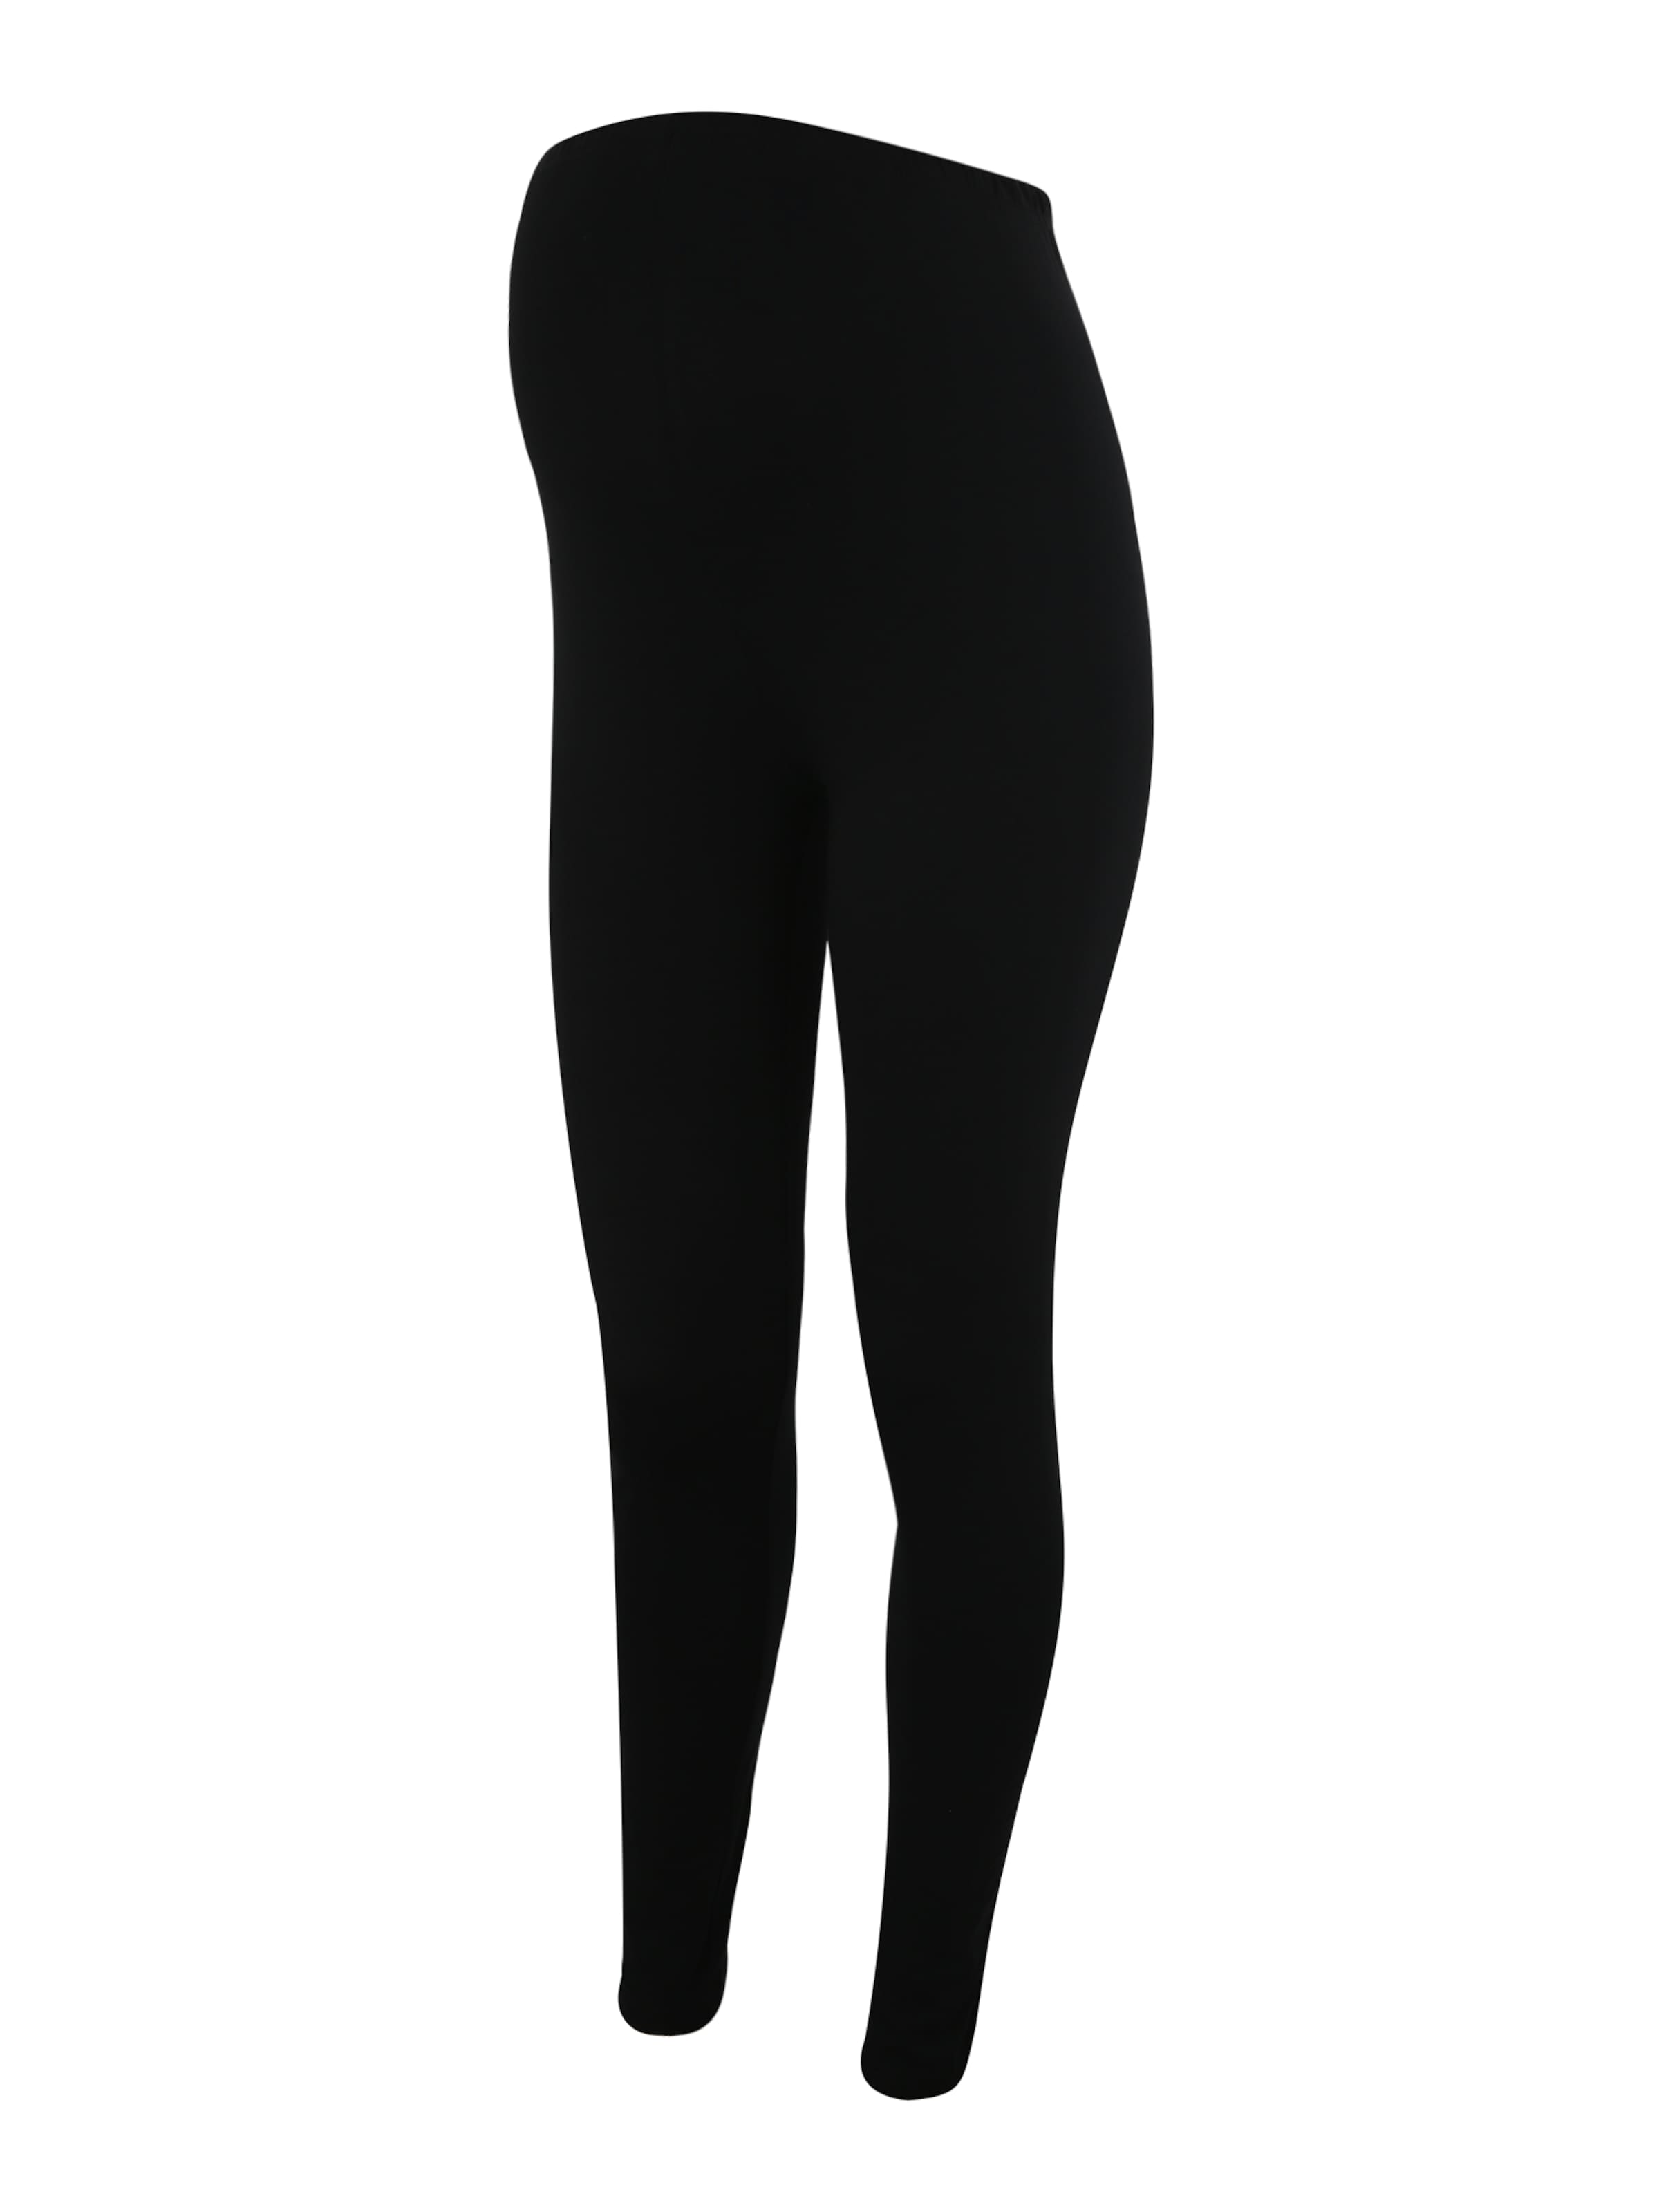 In Mamalicious In Leggings Leggings Mamalicious Zwart Mamalicious In Zwart Zwart Leggings Mamalicious Leggings P8Ow0nk